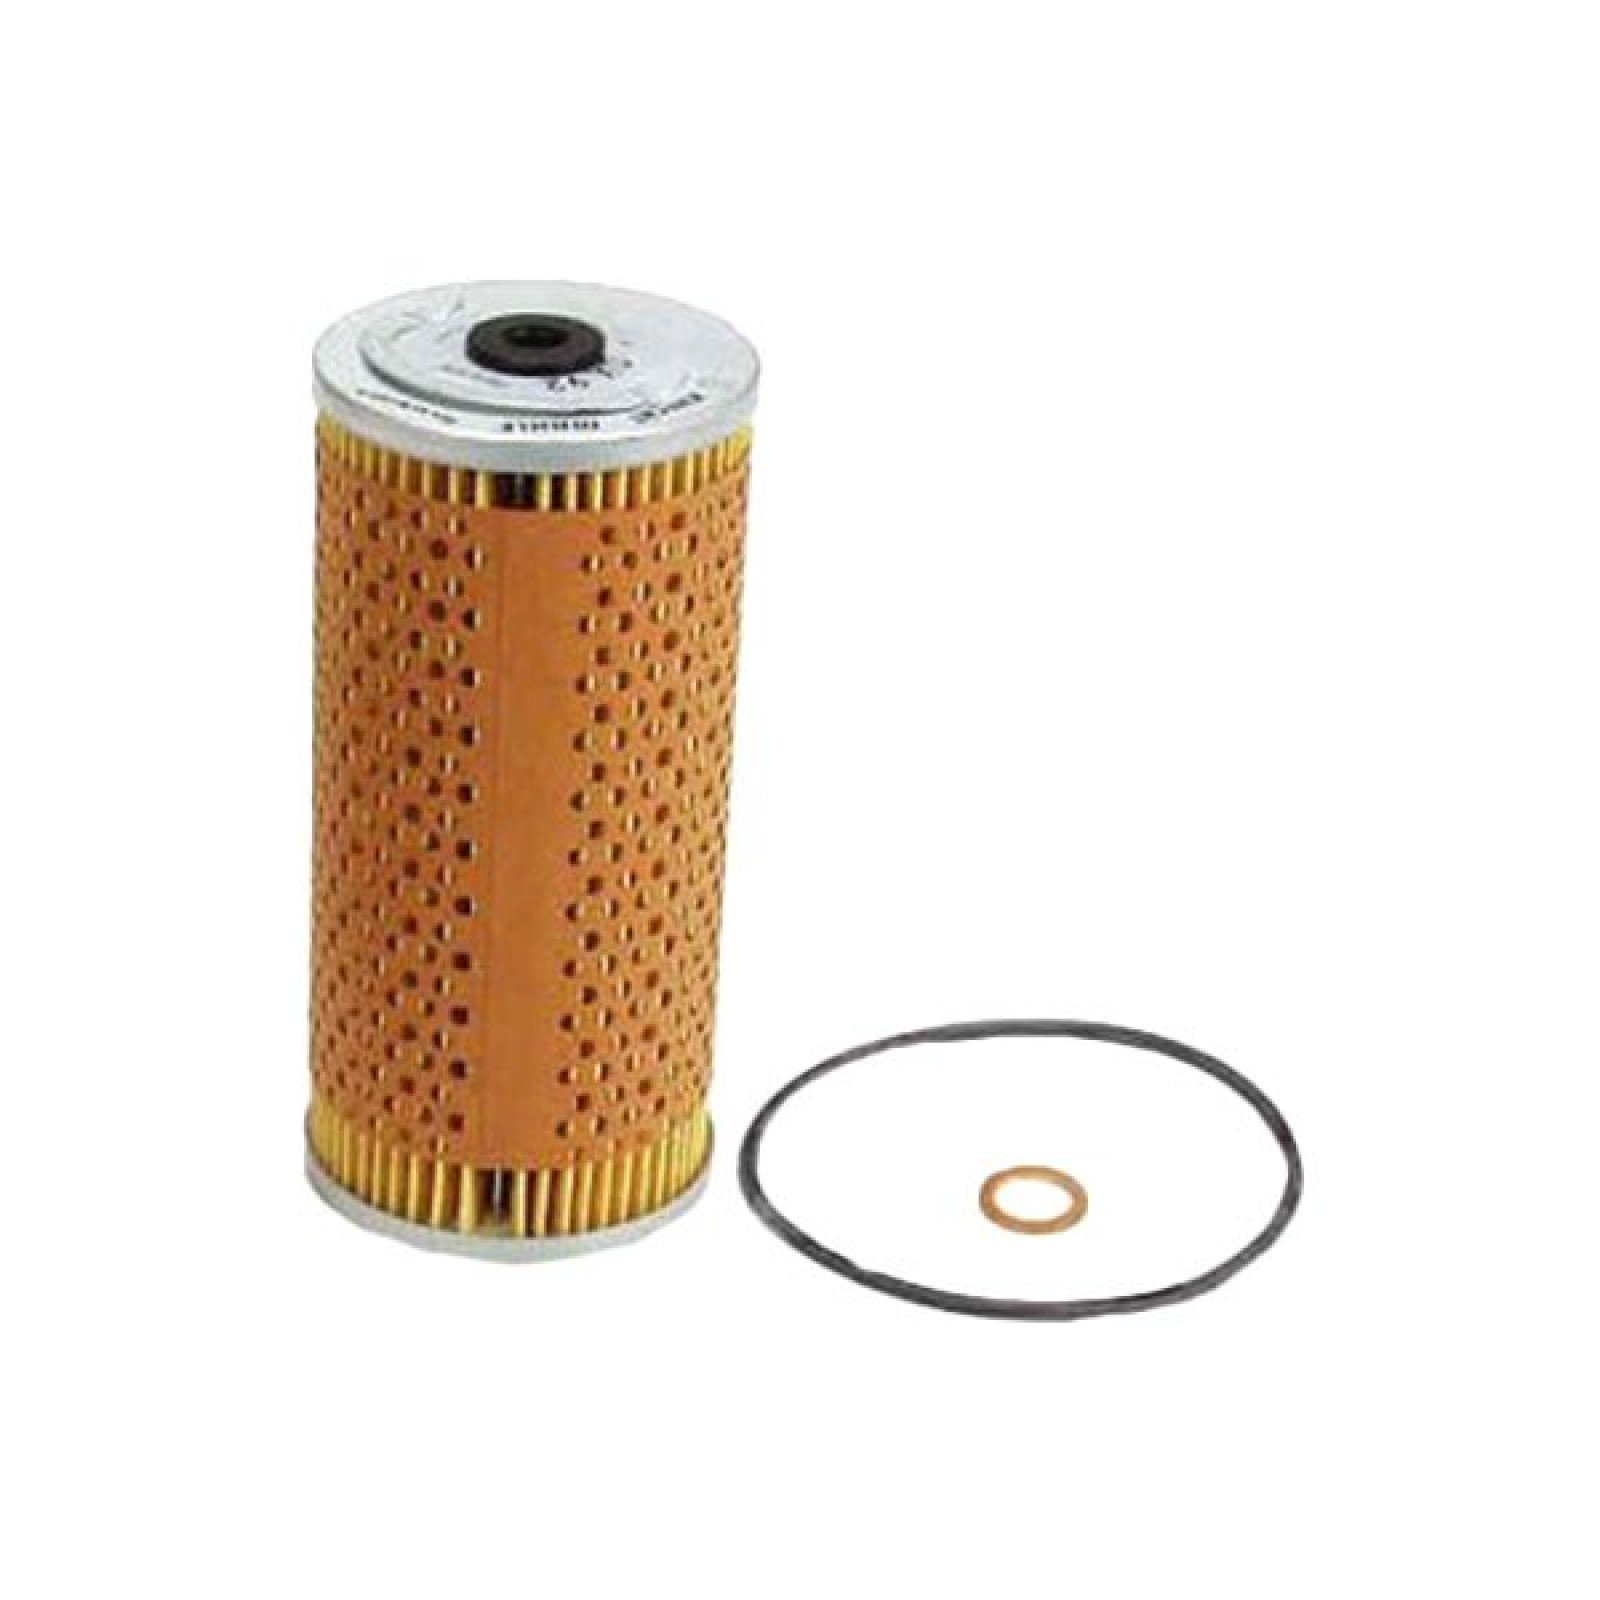 cf af oil mercedes benz ce bd hengst ae filter bb en ba bf